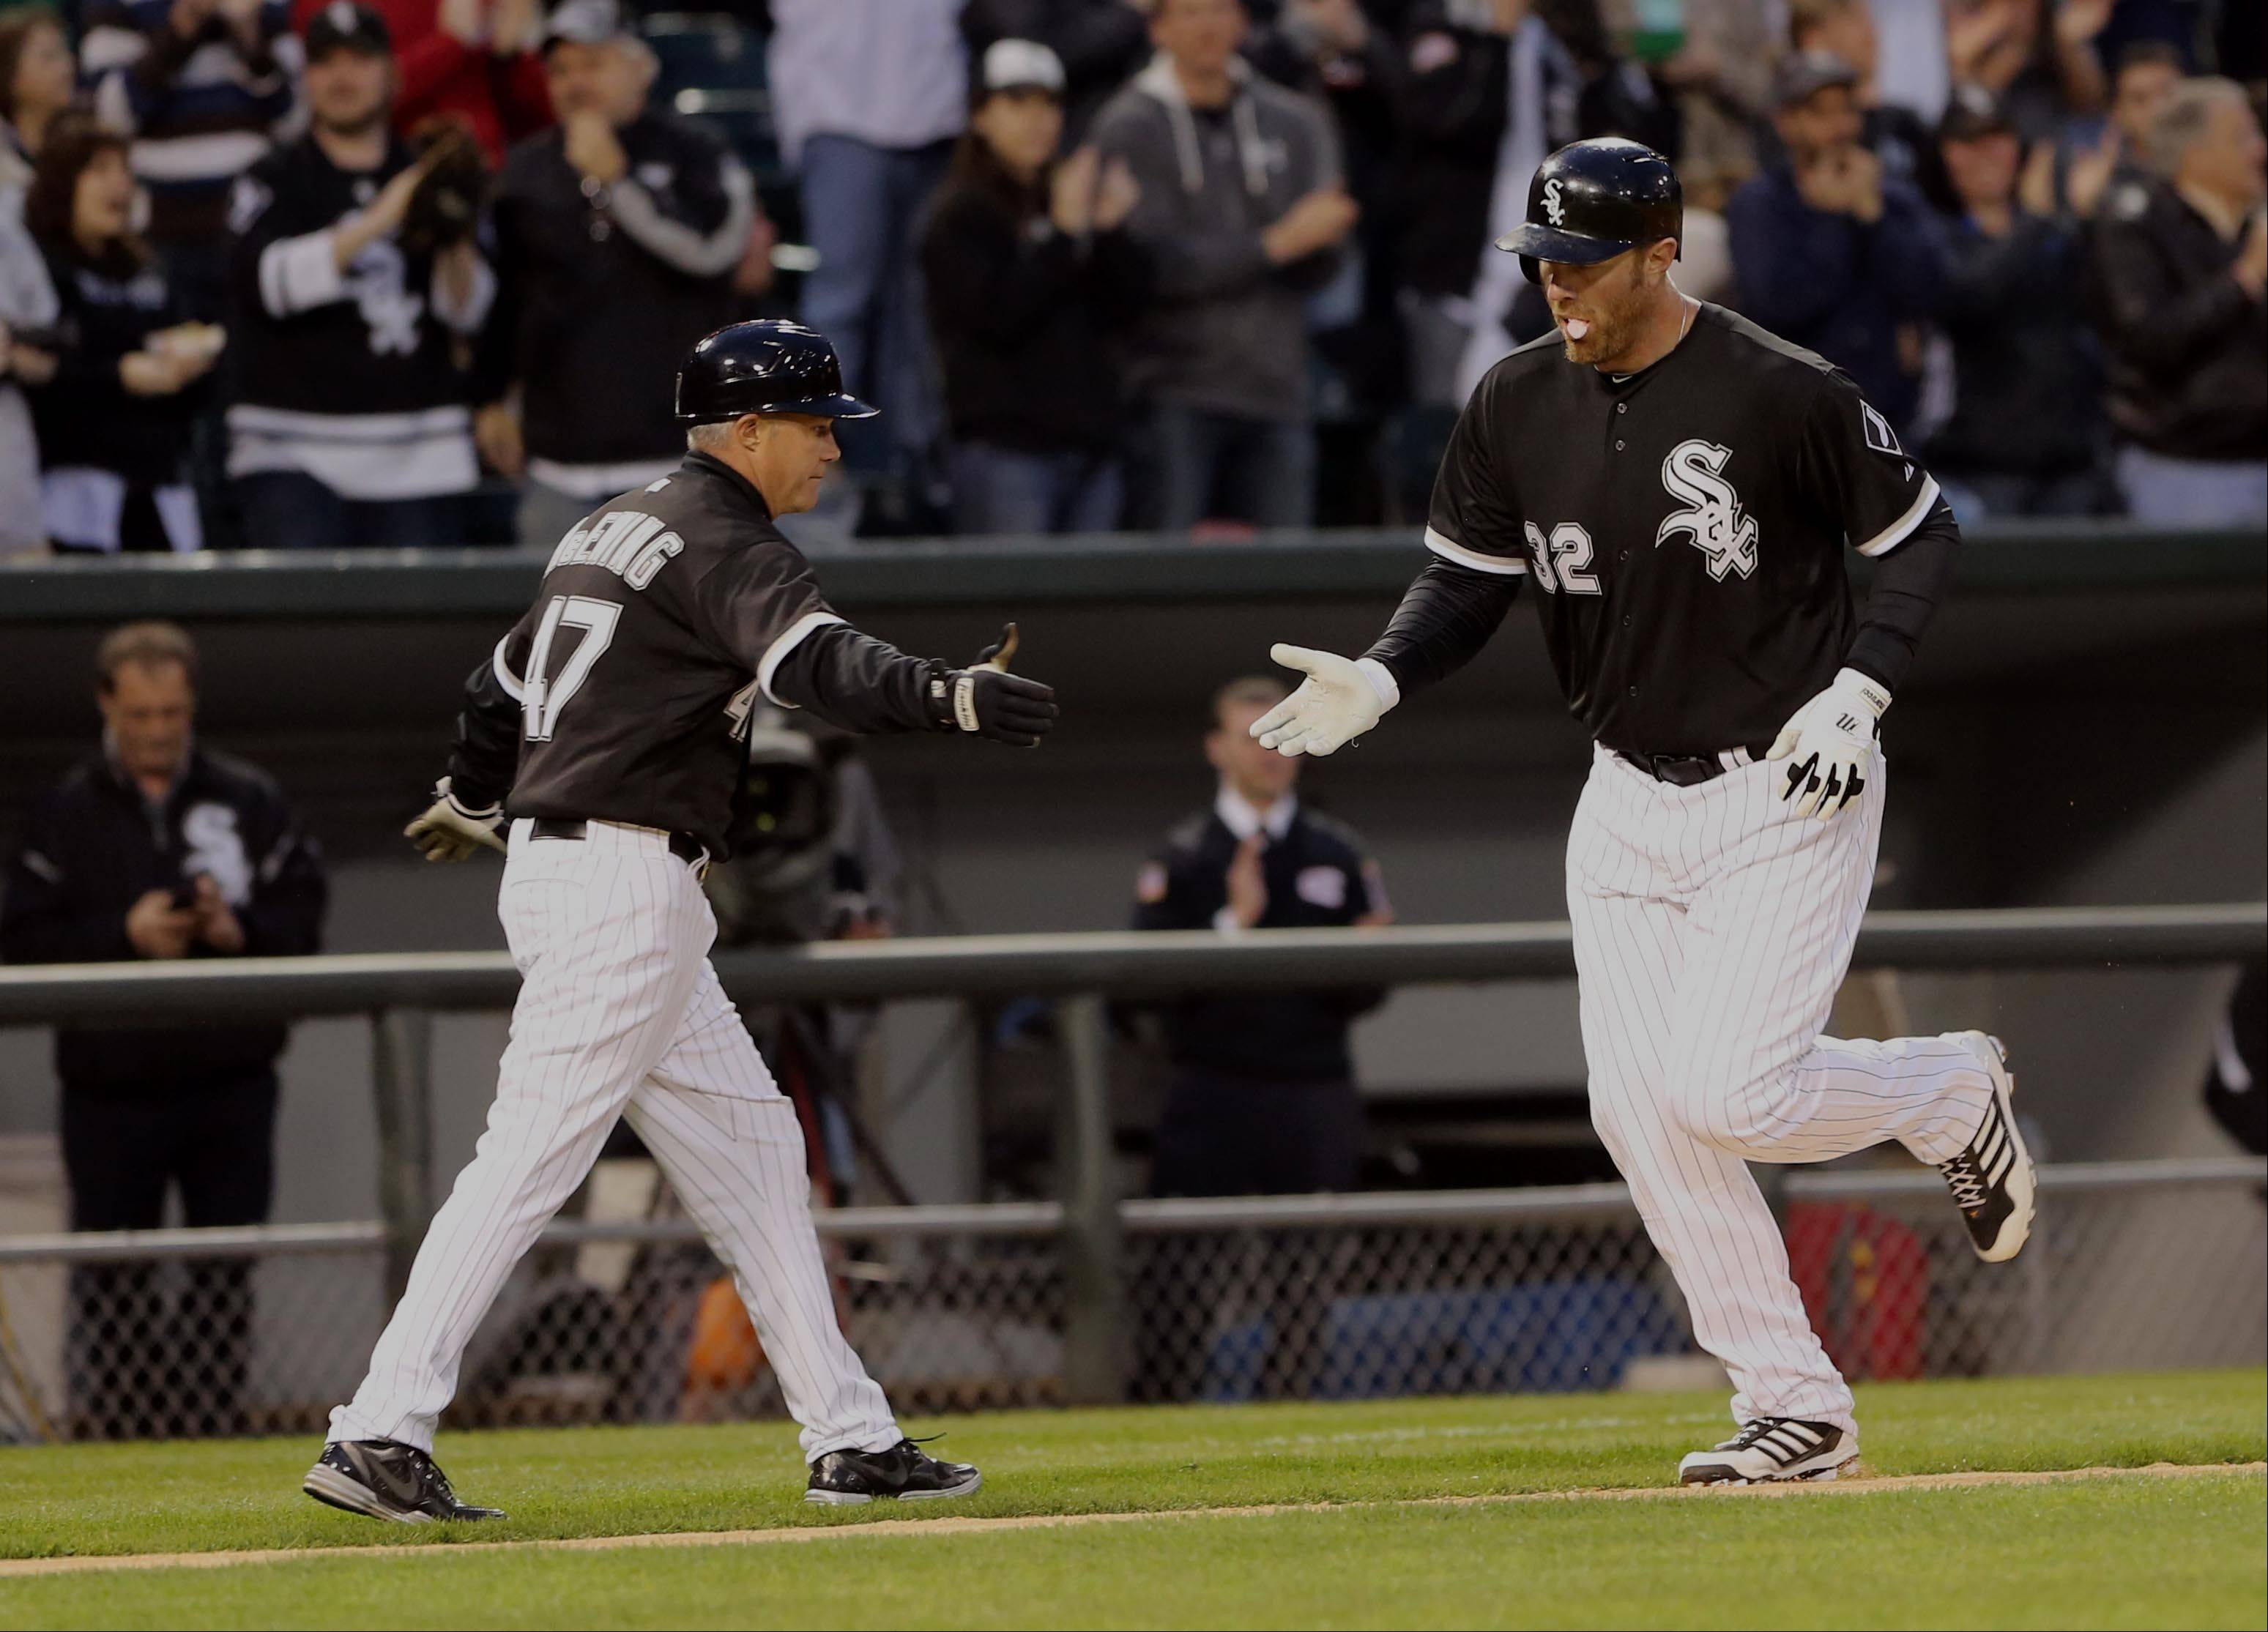 Adam Dunn shakes hands with third base coach Joe McEwing after hitting a solo home run in the fourth inning Saturday at U.S. Cellular Field.